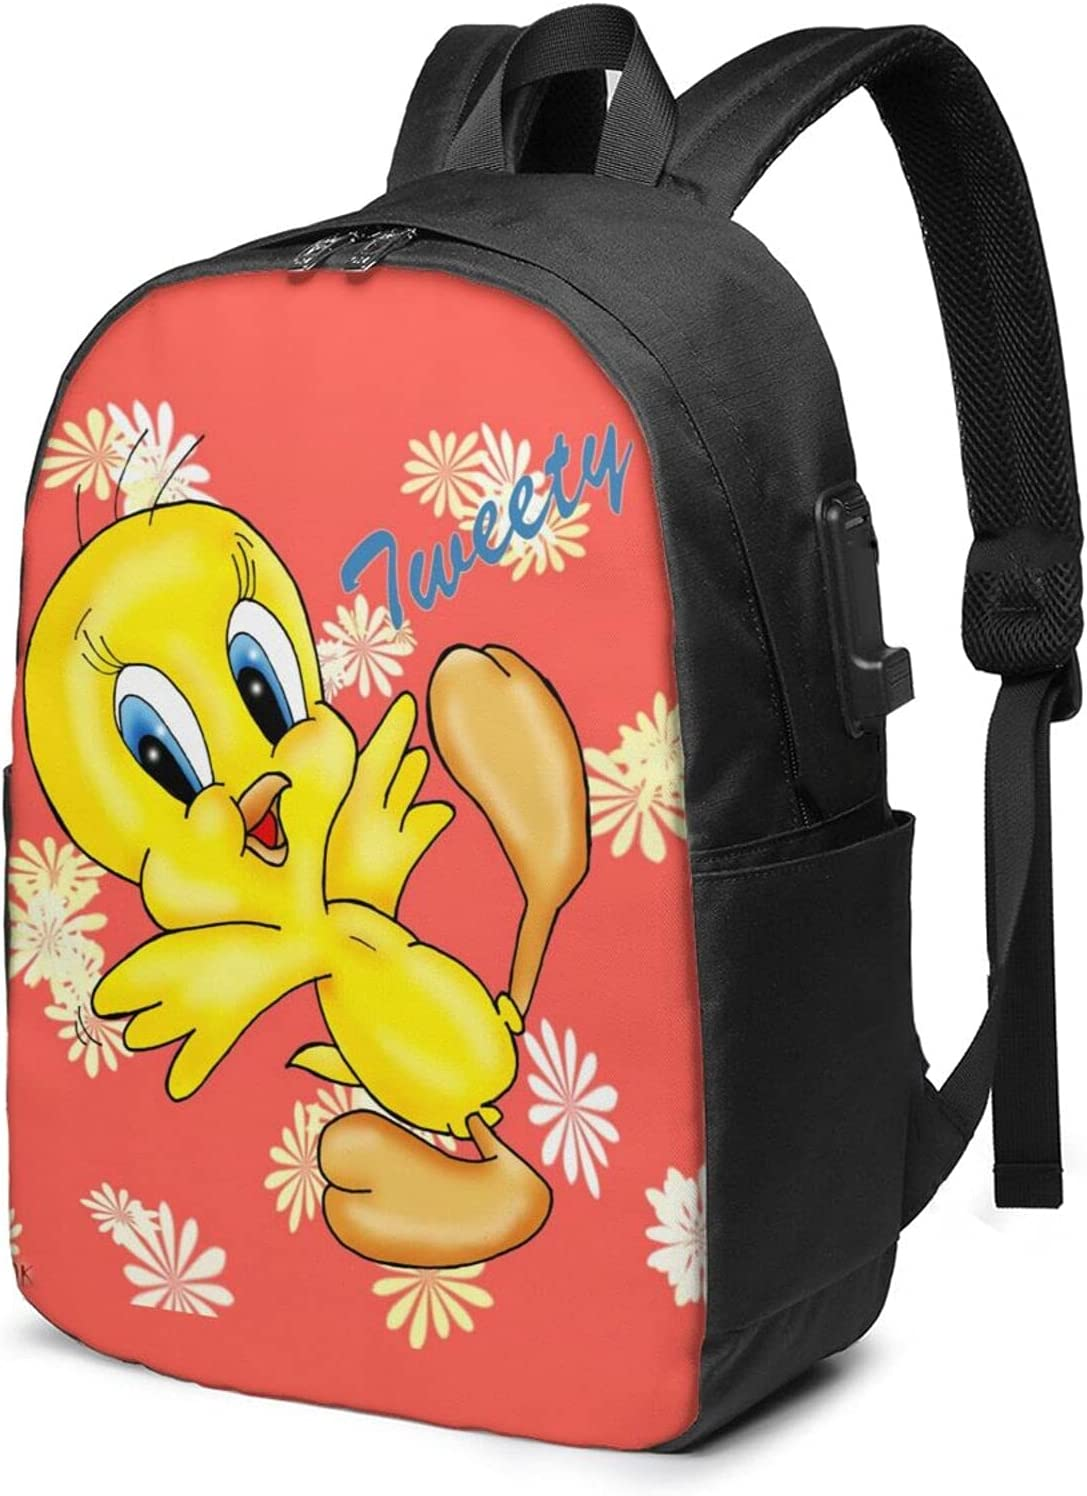 T-weety Bird School Bookbag Usb Ba Complete Free Shipping 17in Interface Laptop Max 44% OFF Daypack